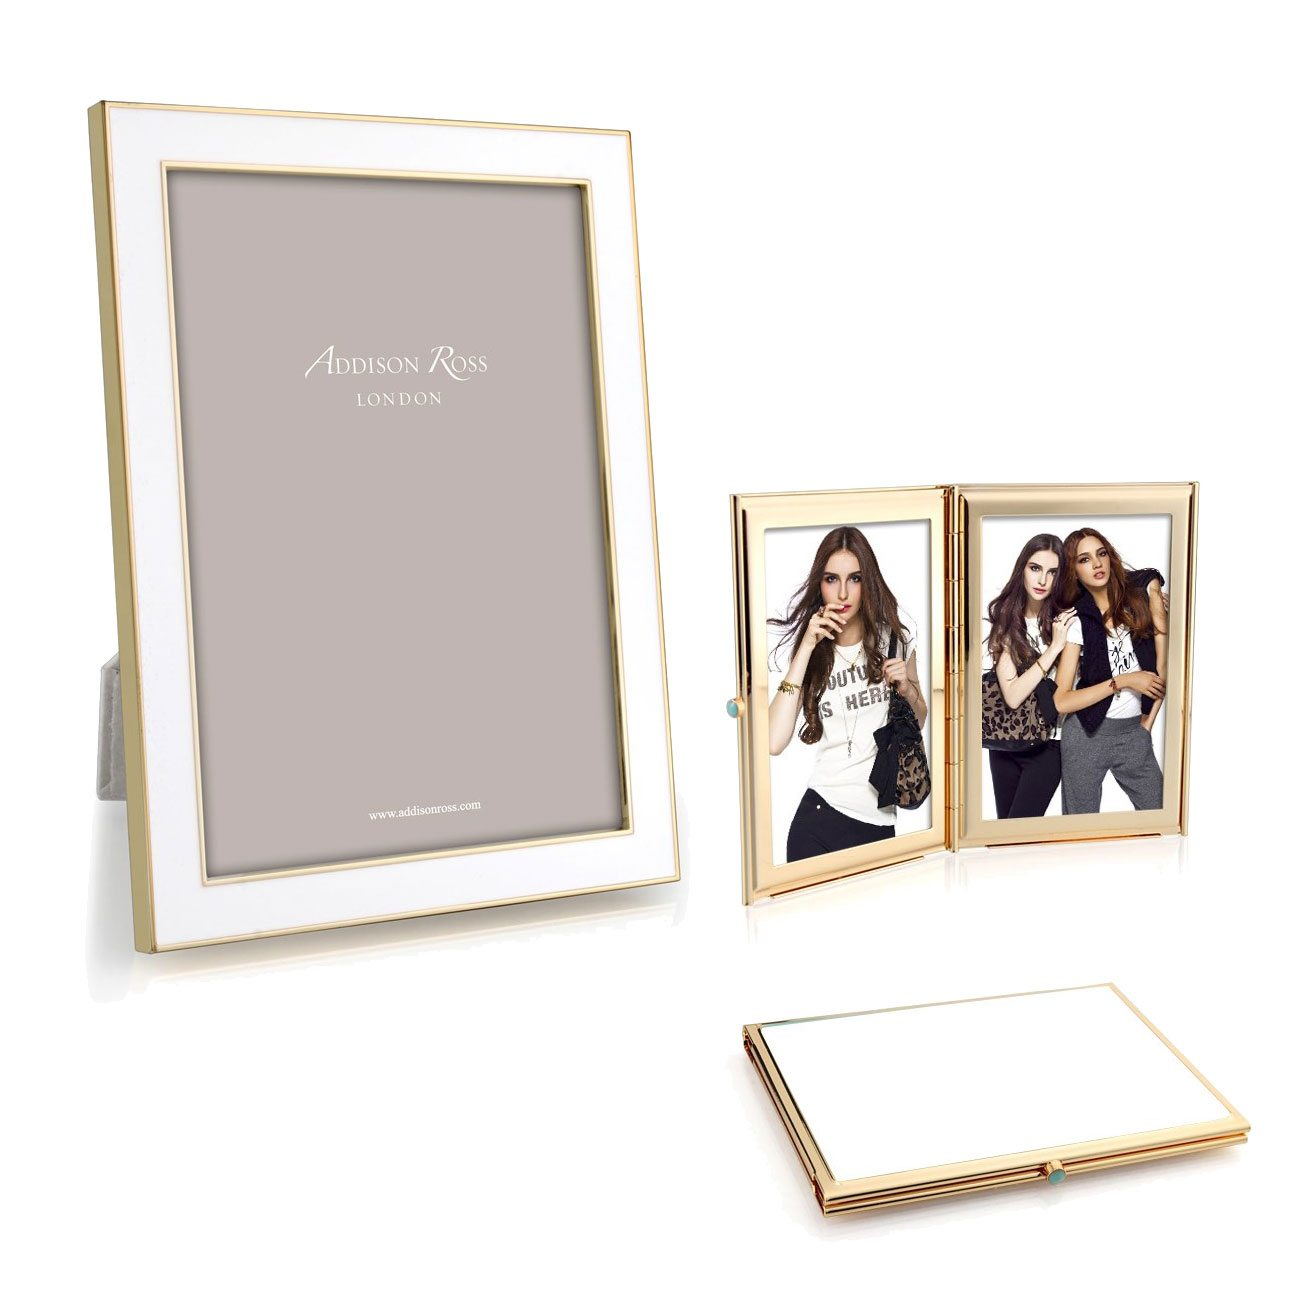 Addison Ross White Enamel Gold Frame Collection